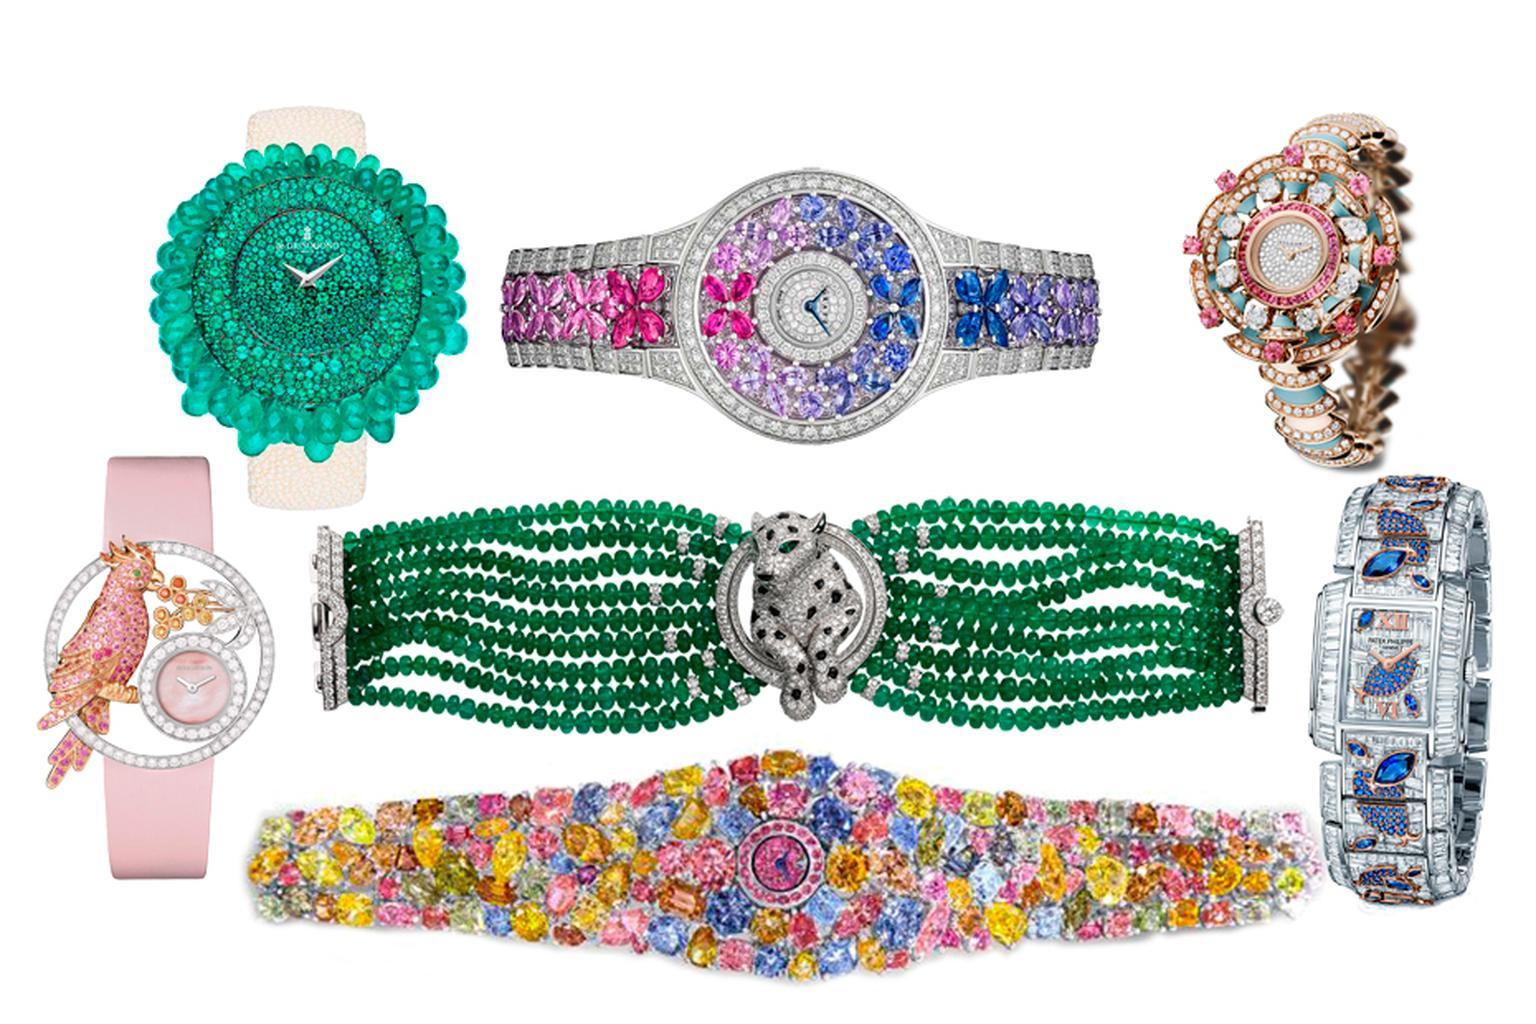 2014 was a very generous year for high jewellery watches with dazzling beauties popping up the SIHH, Baselworld and the Biennale des Antiquaires buoyed by an ever-growing appetite for coloured gemstones and diamonds. Viva 2014!